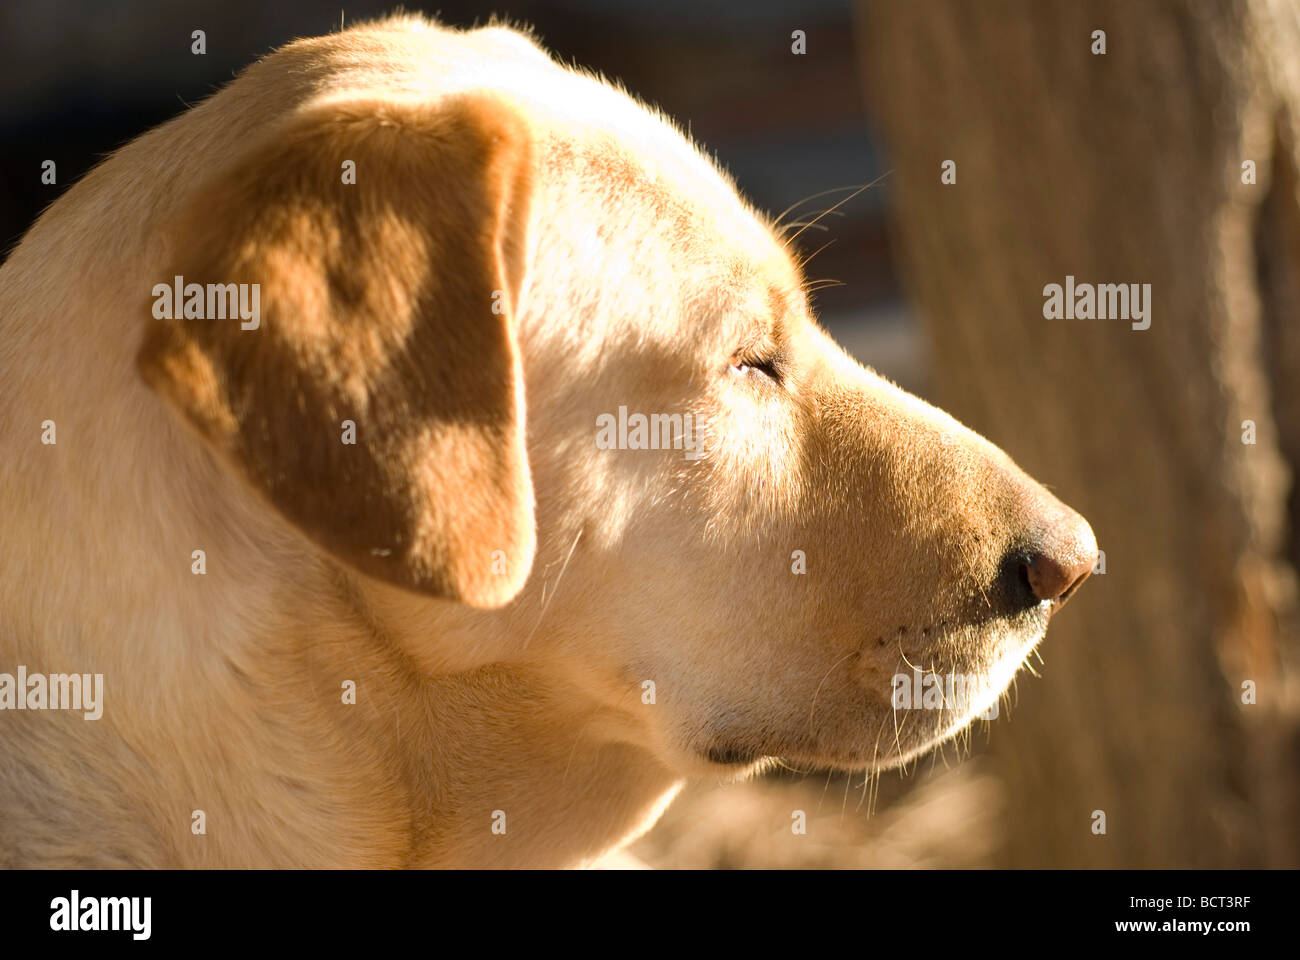 dog sleeping - labrador - Stock Image